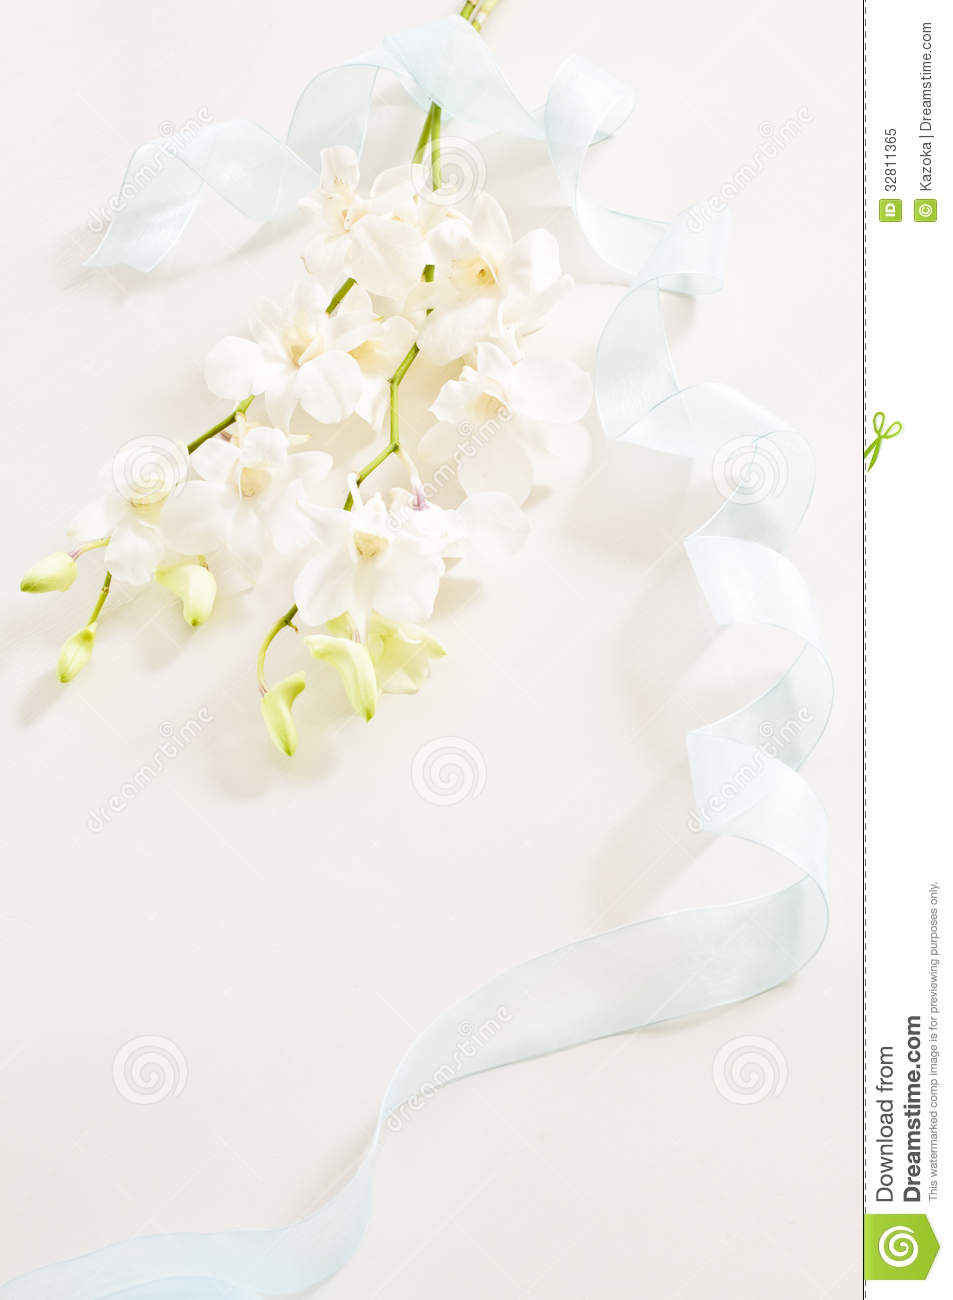 Image of funeral stock image. Image of flower, clean ...